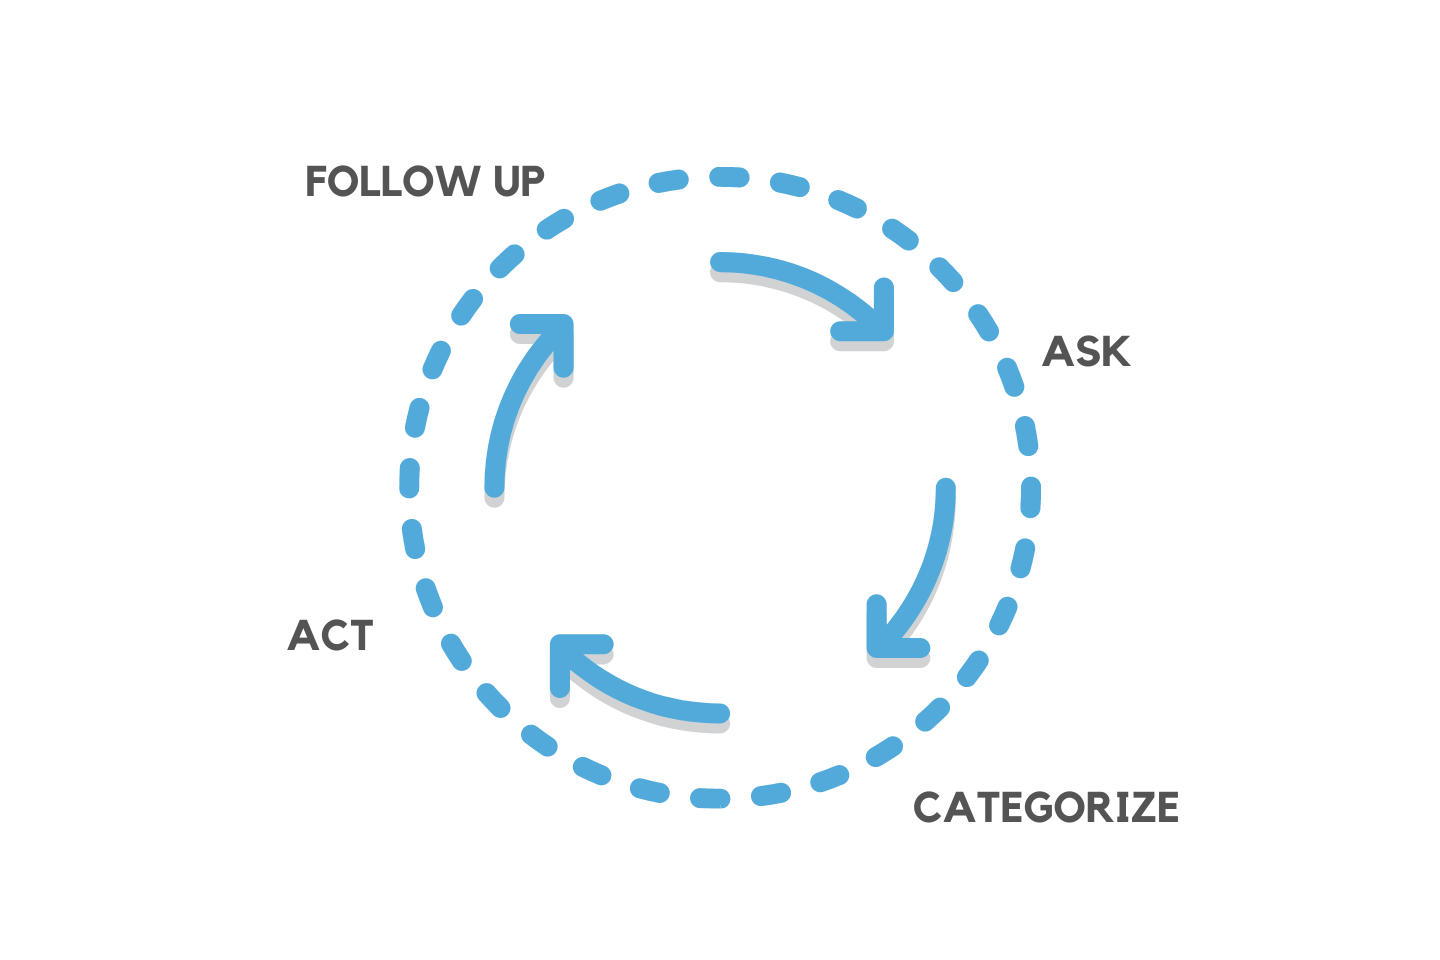 the ACAF guest feedback loop for hotels